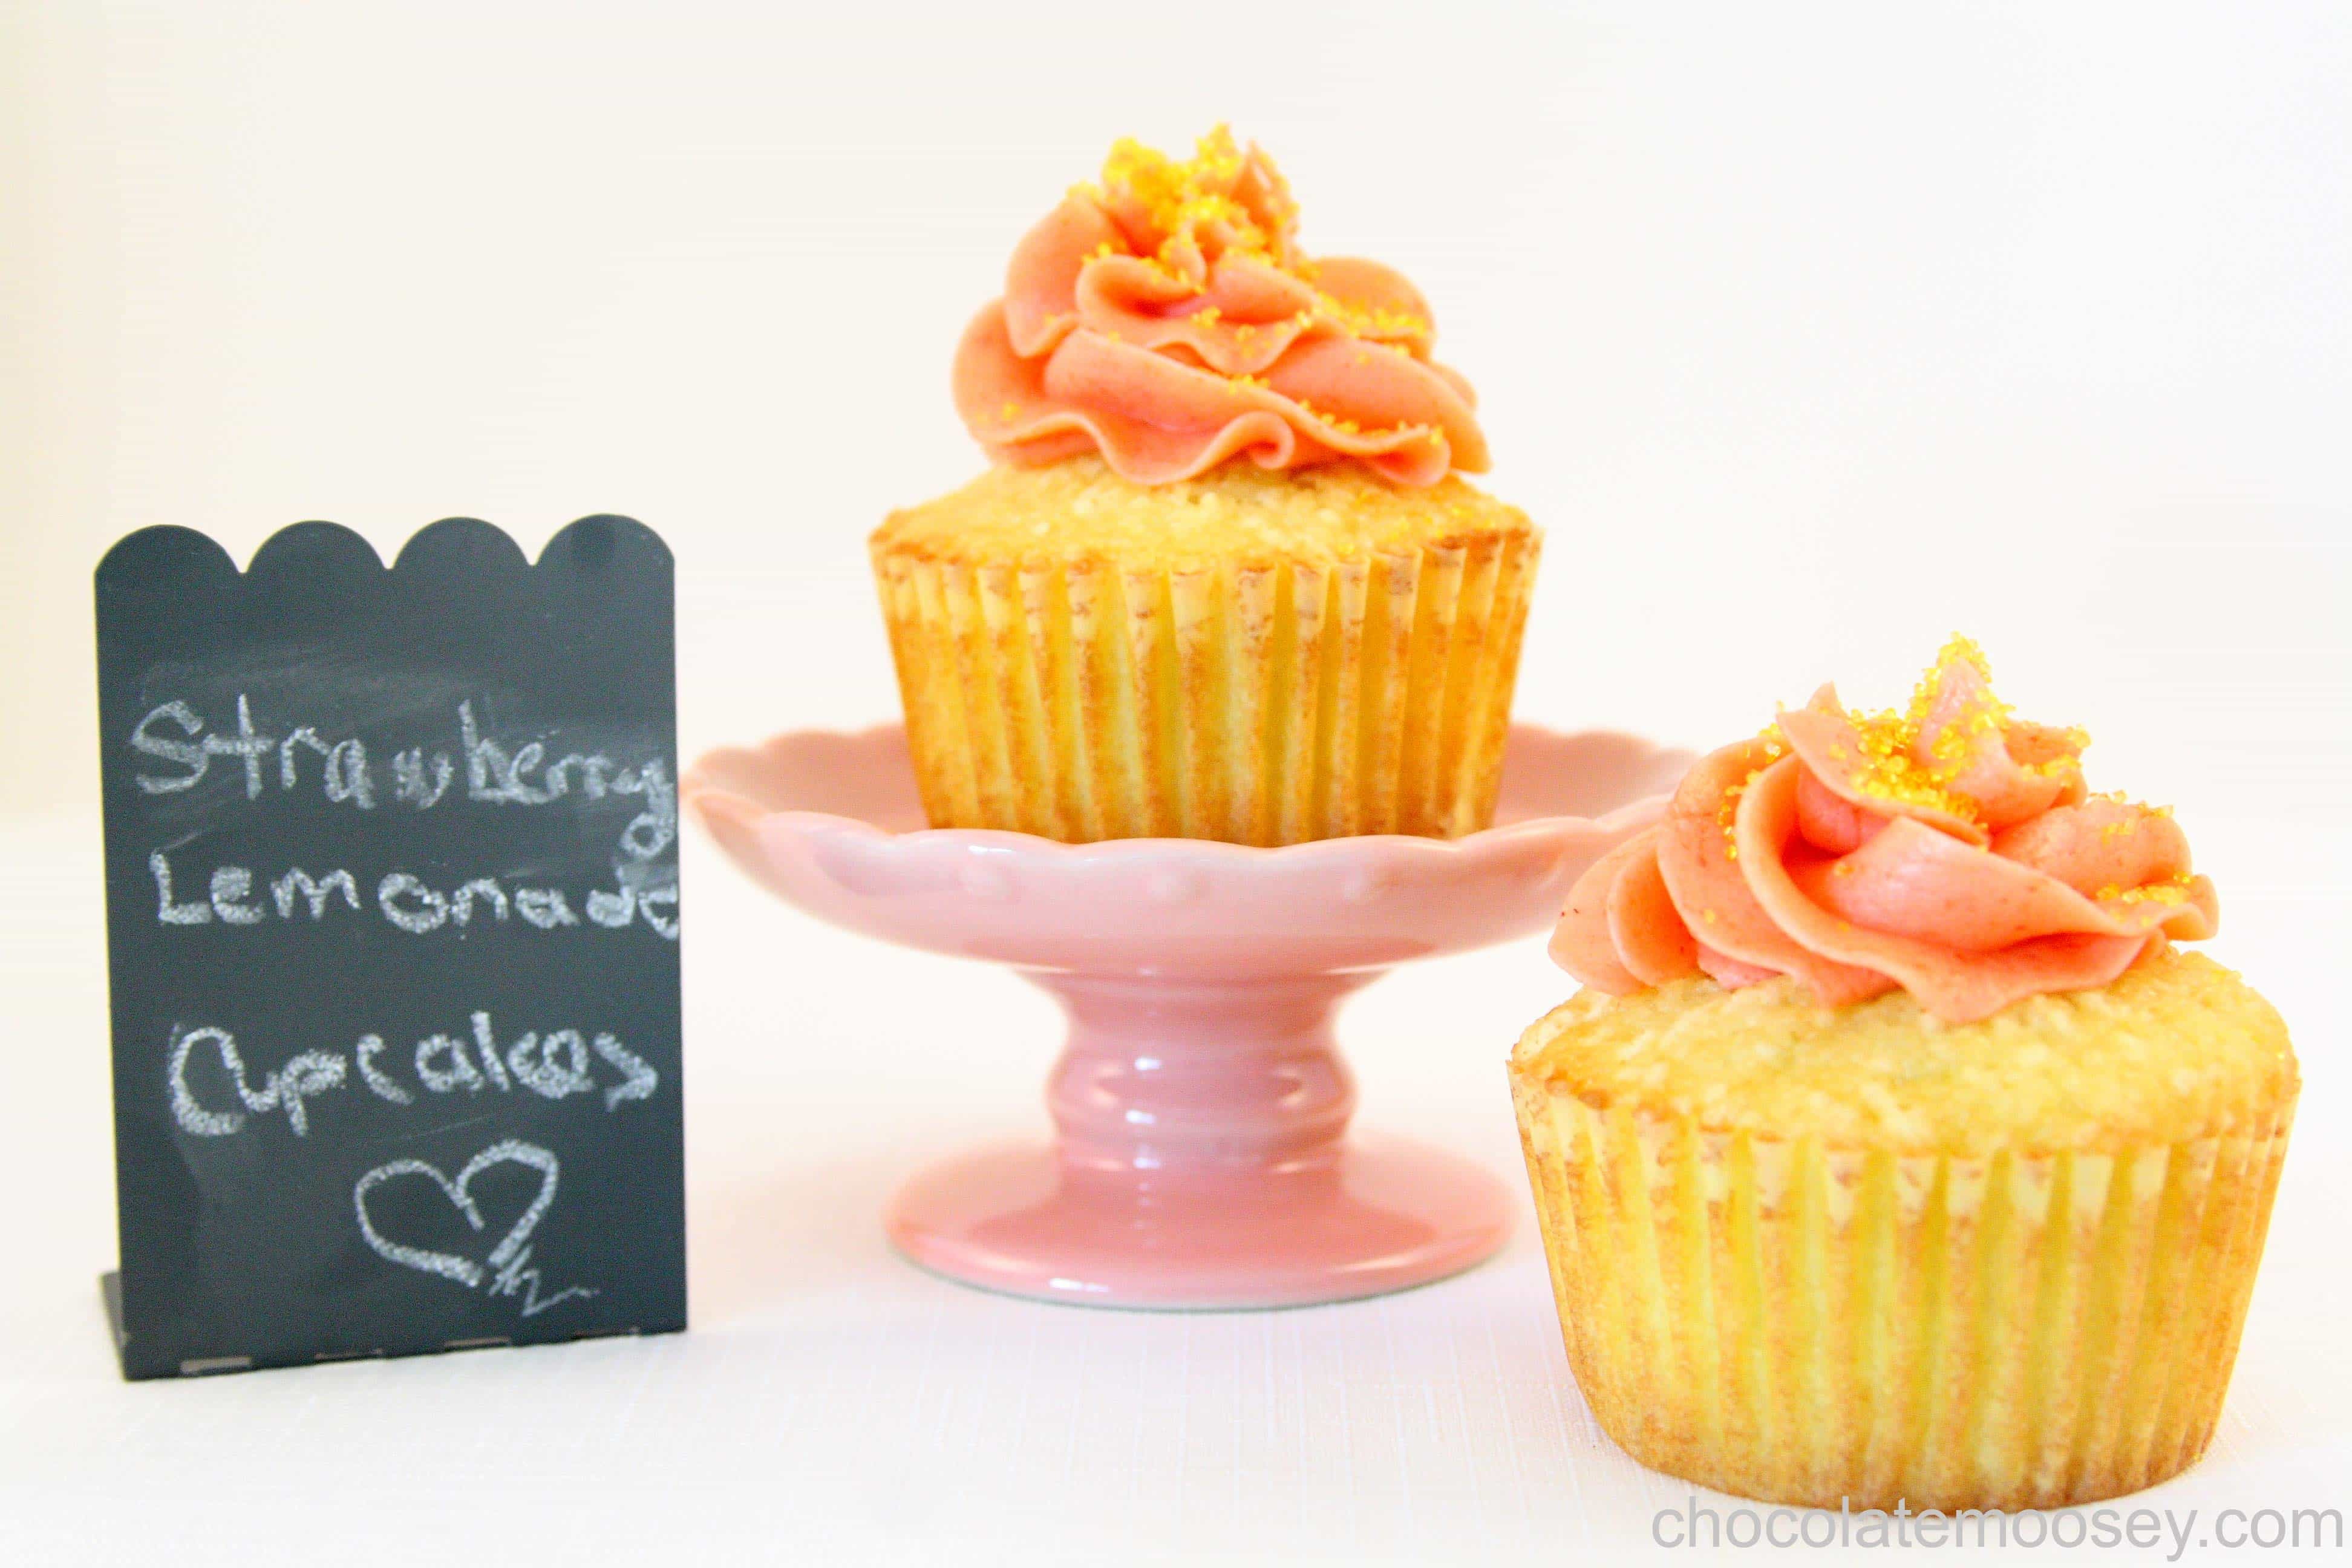 Strawberry Lemonade Cupcakes from www.chocolatemoosey.com